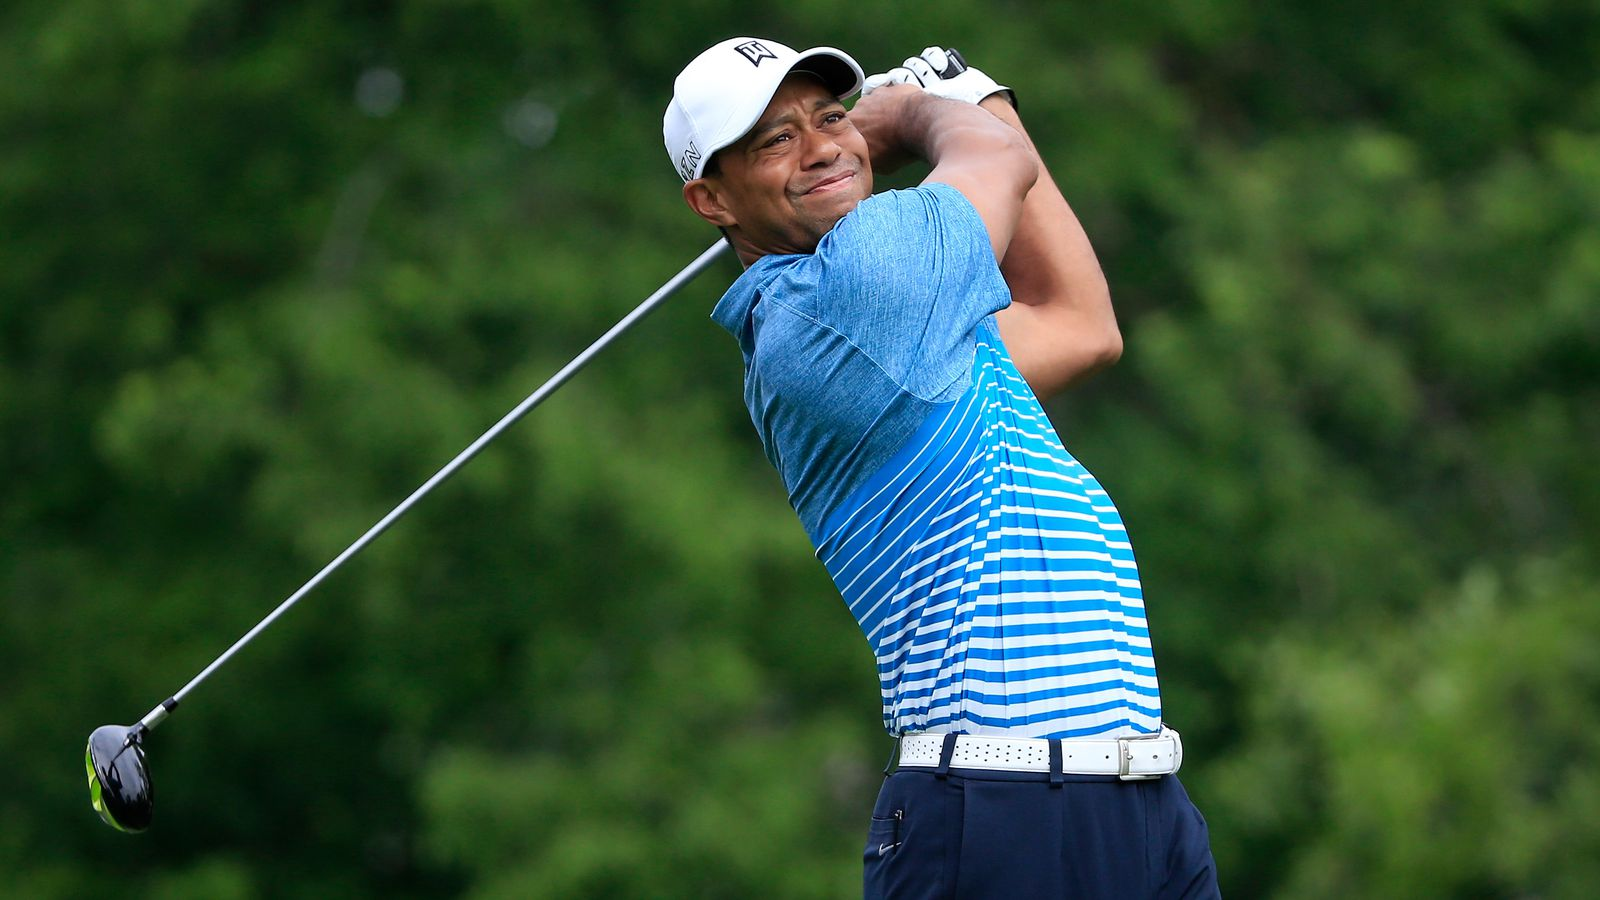 memorial tournament live stream how to watch tiger woods online tv coverage and more. Black Bedroom Furniture Sets. Home Design Ideas